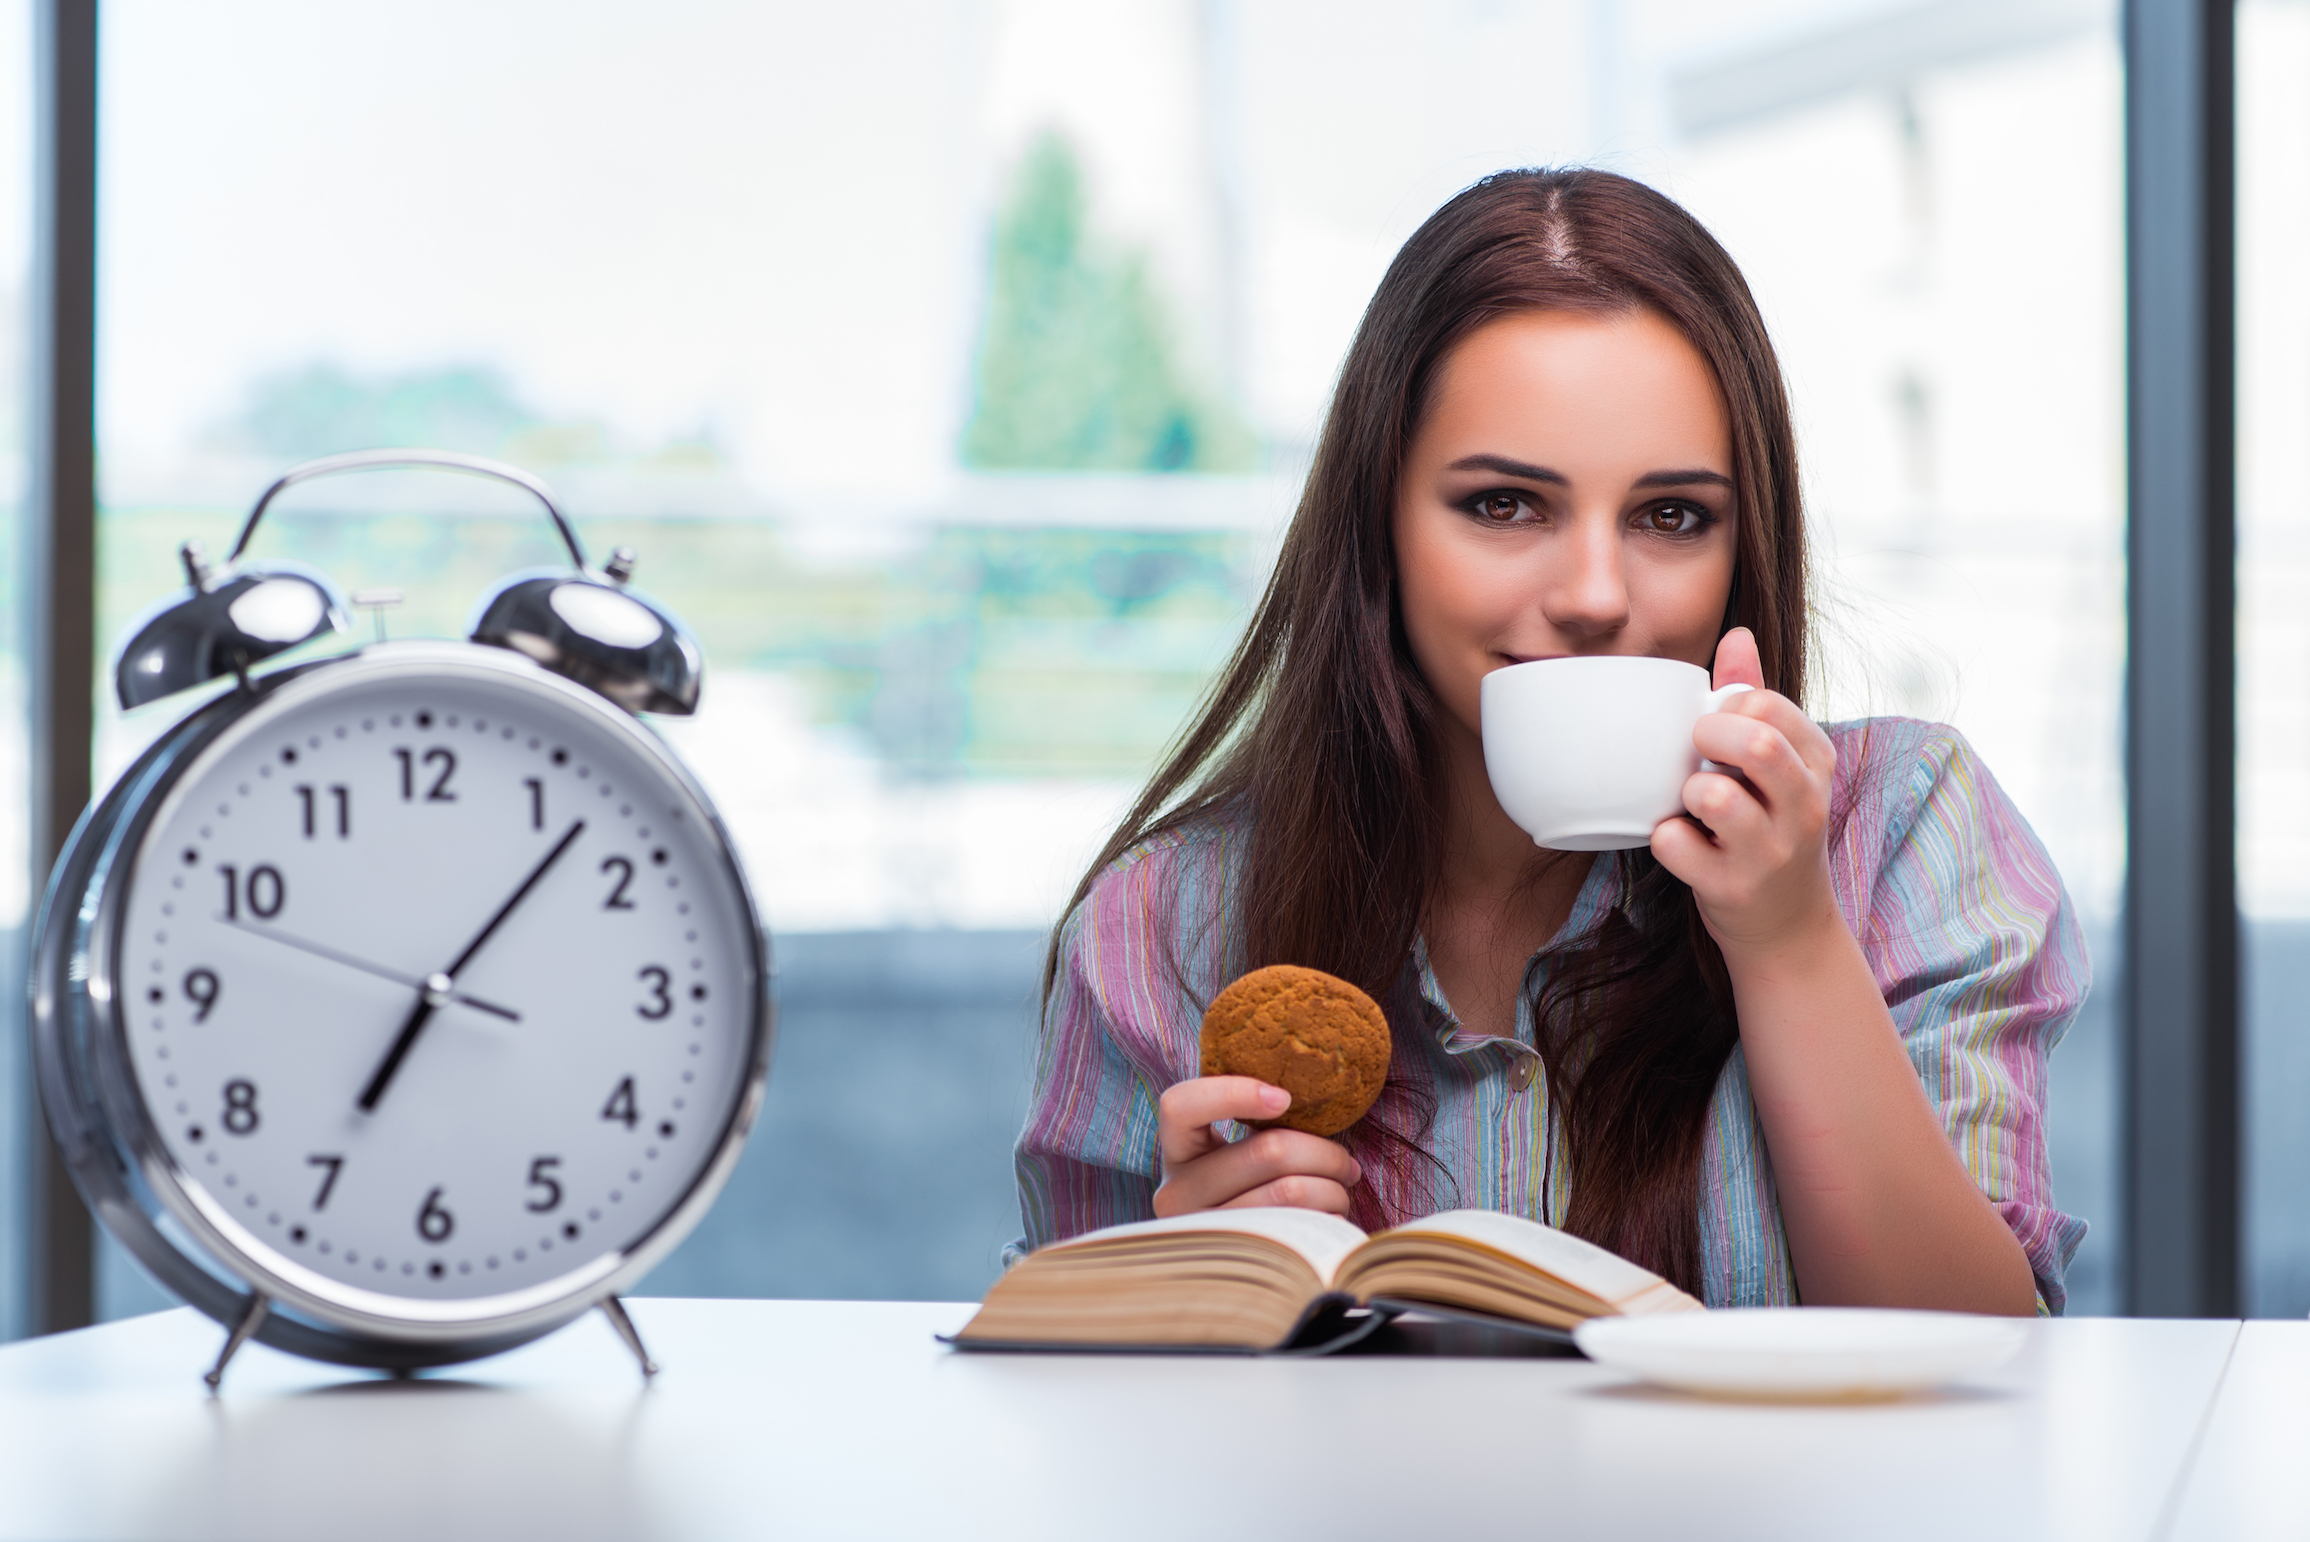 Delaying meals can reset your body clock and affect your blood sugar levels, a new study from University of Surrey.